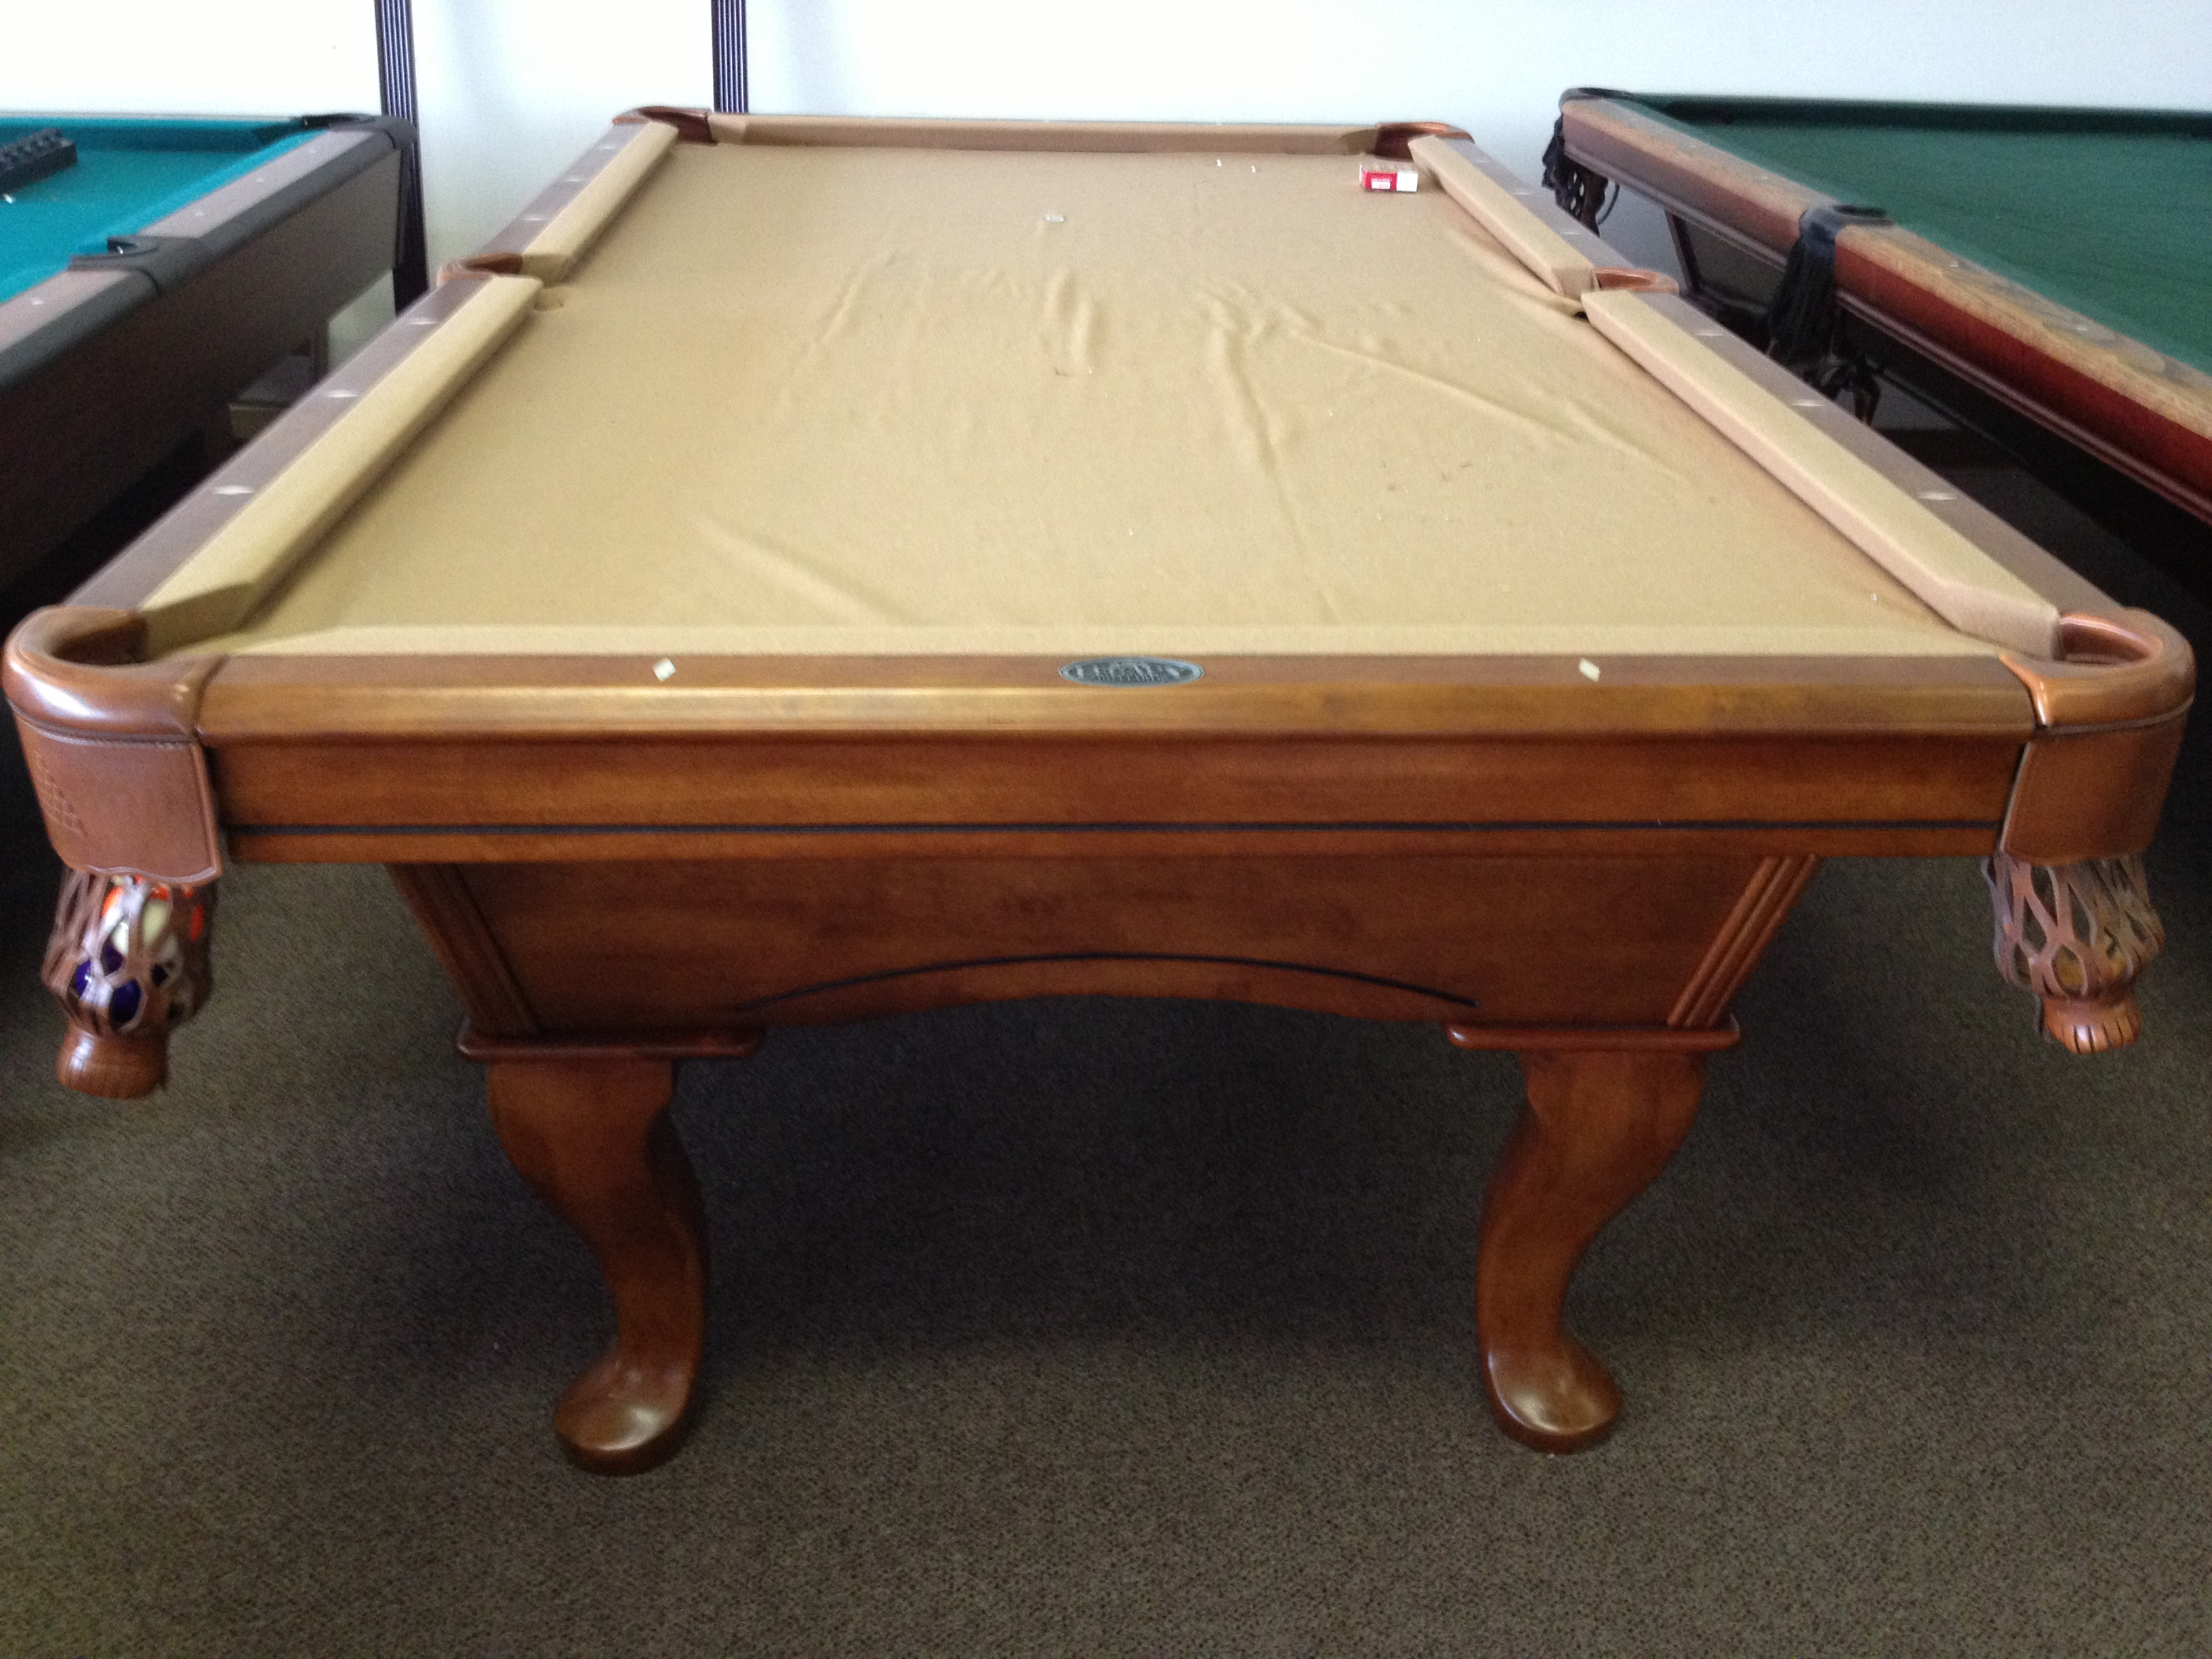 Clearance Overstock And Deals Page Of Billiards And - Amf pool table models